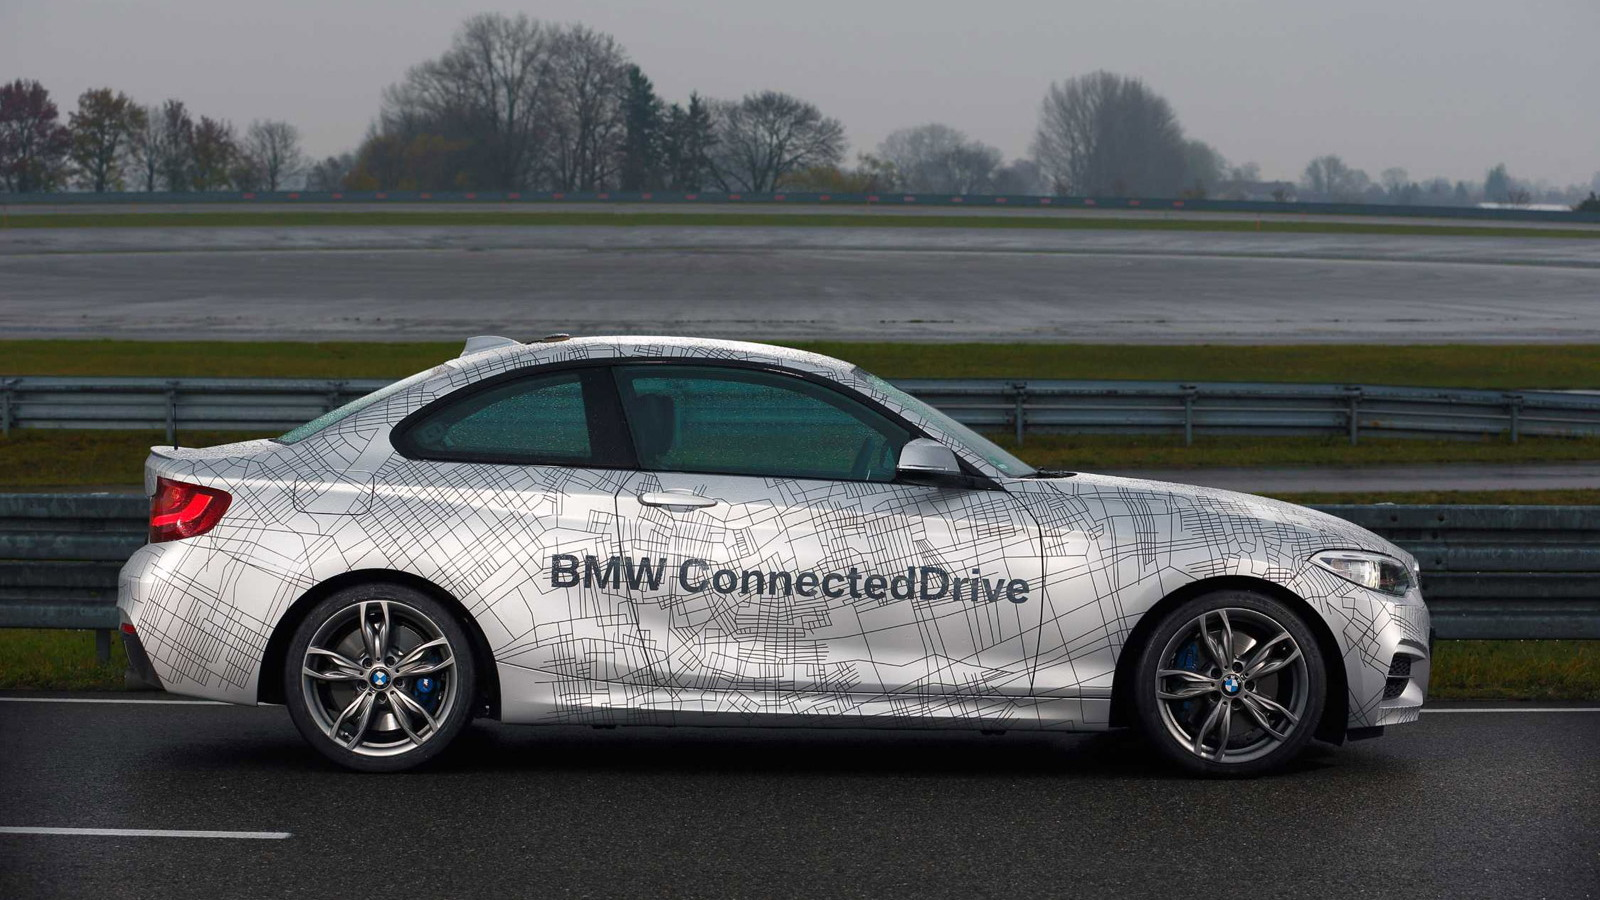 BMW 2-Series ConnectedDrive prototype demonstrating ActiveAssist, 2014 Consumer Electronics Show